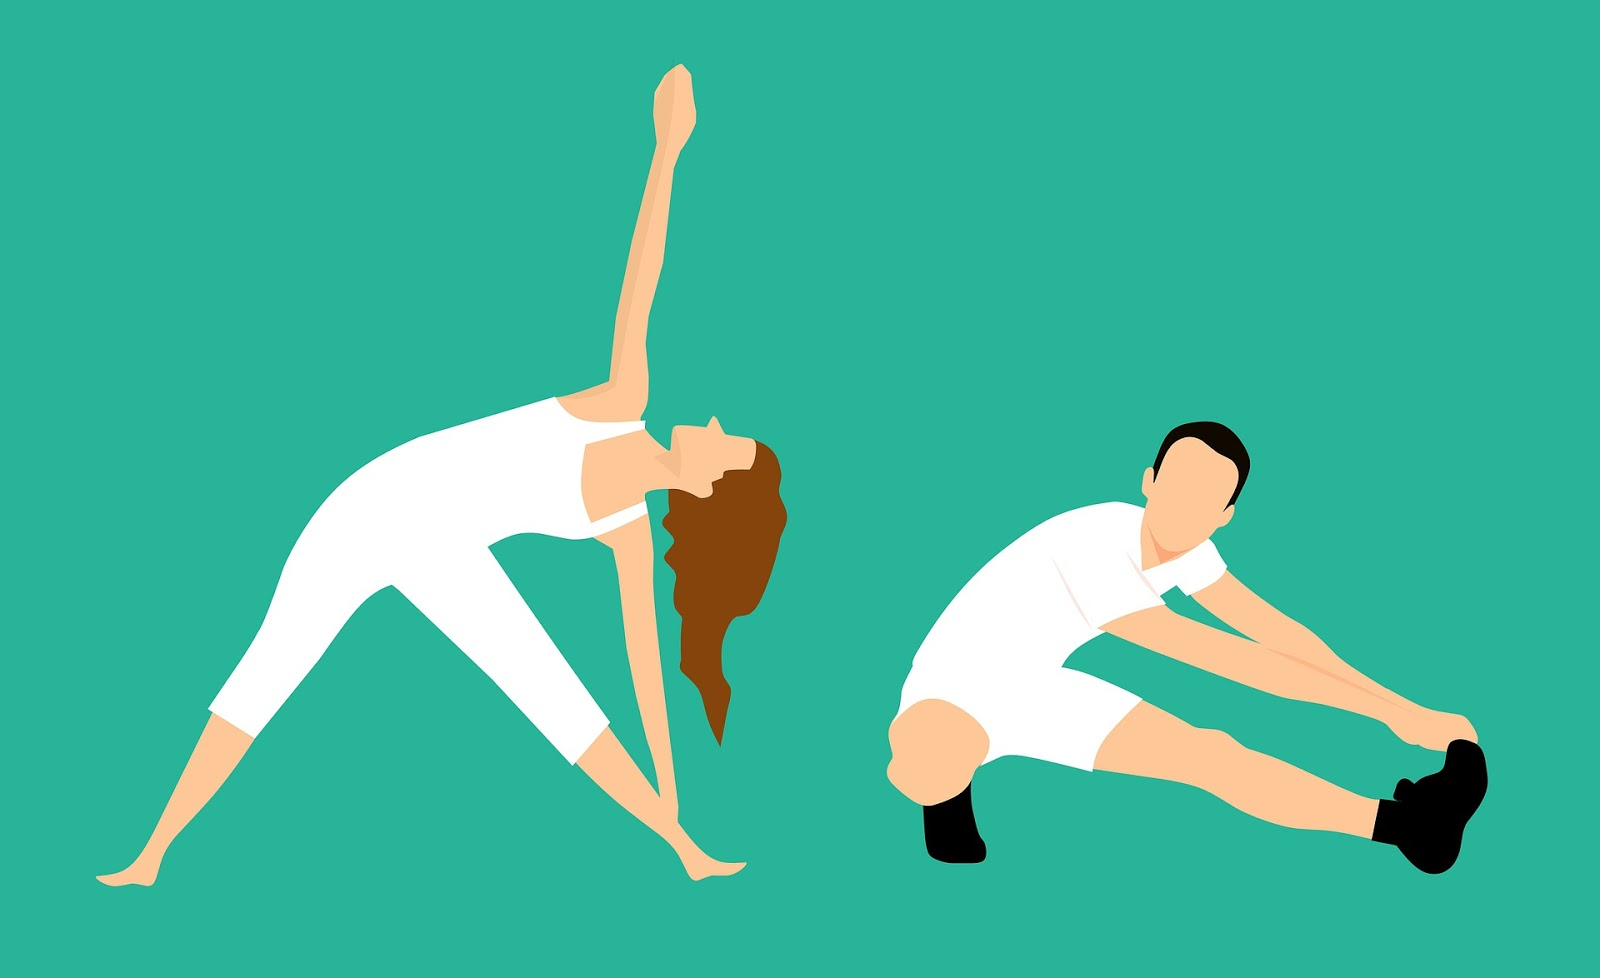 Stretching is important for male and female athletes